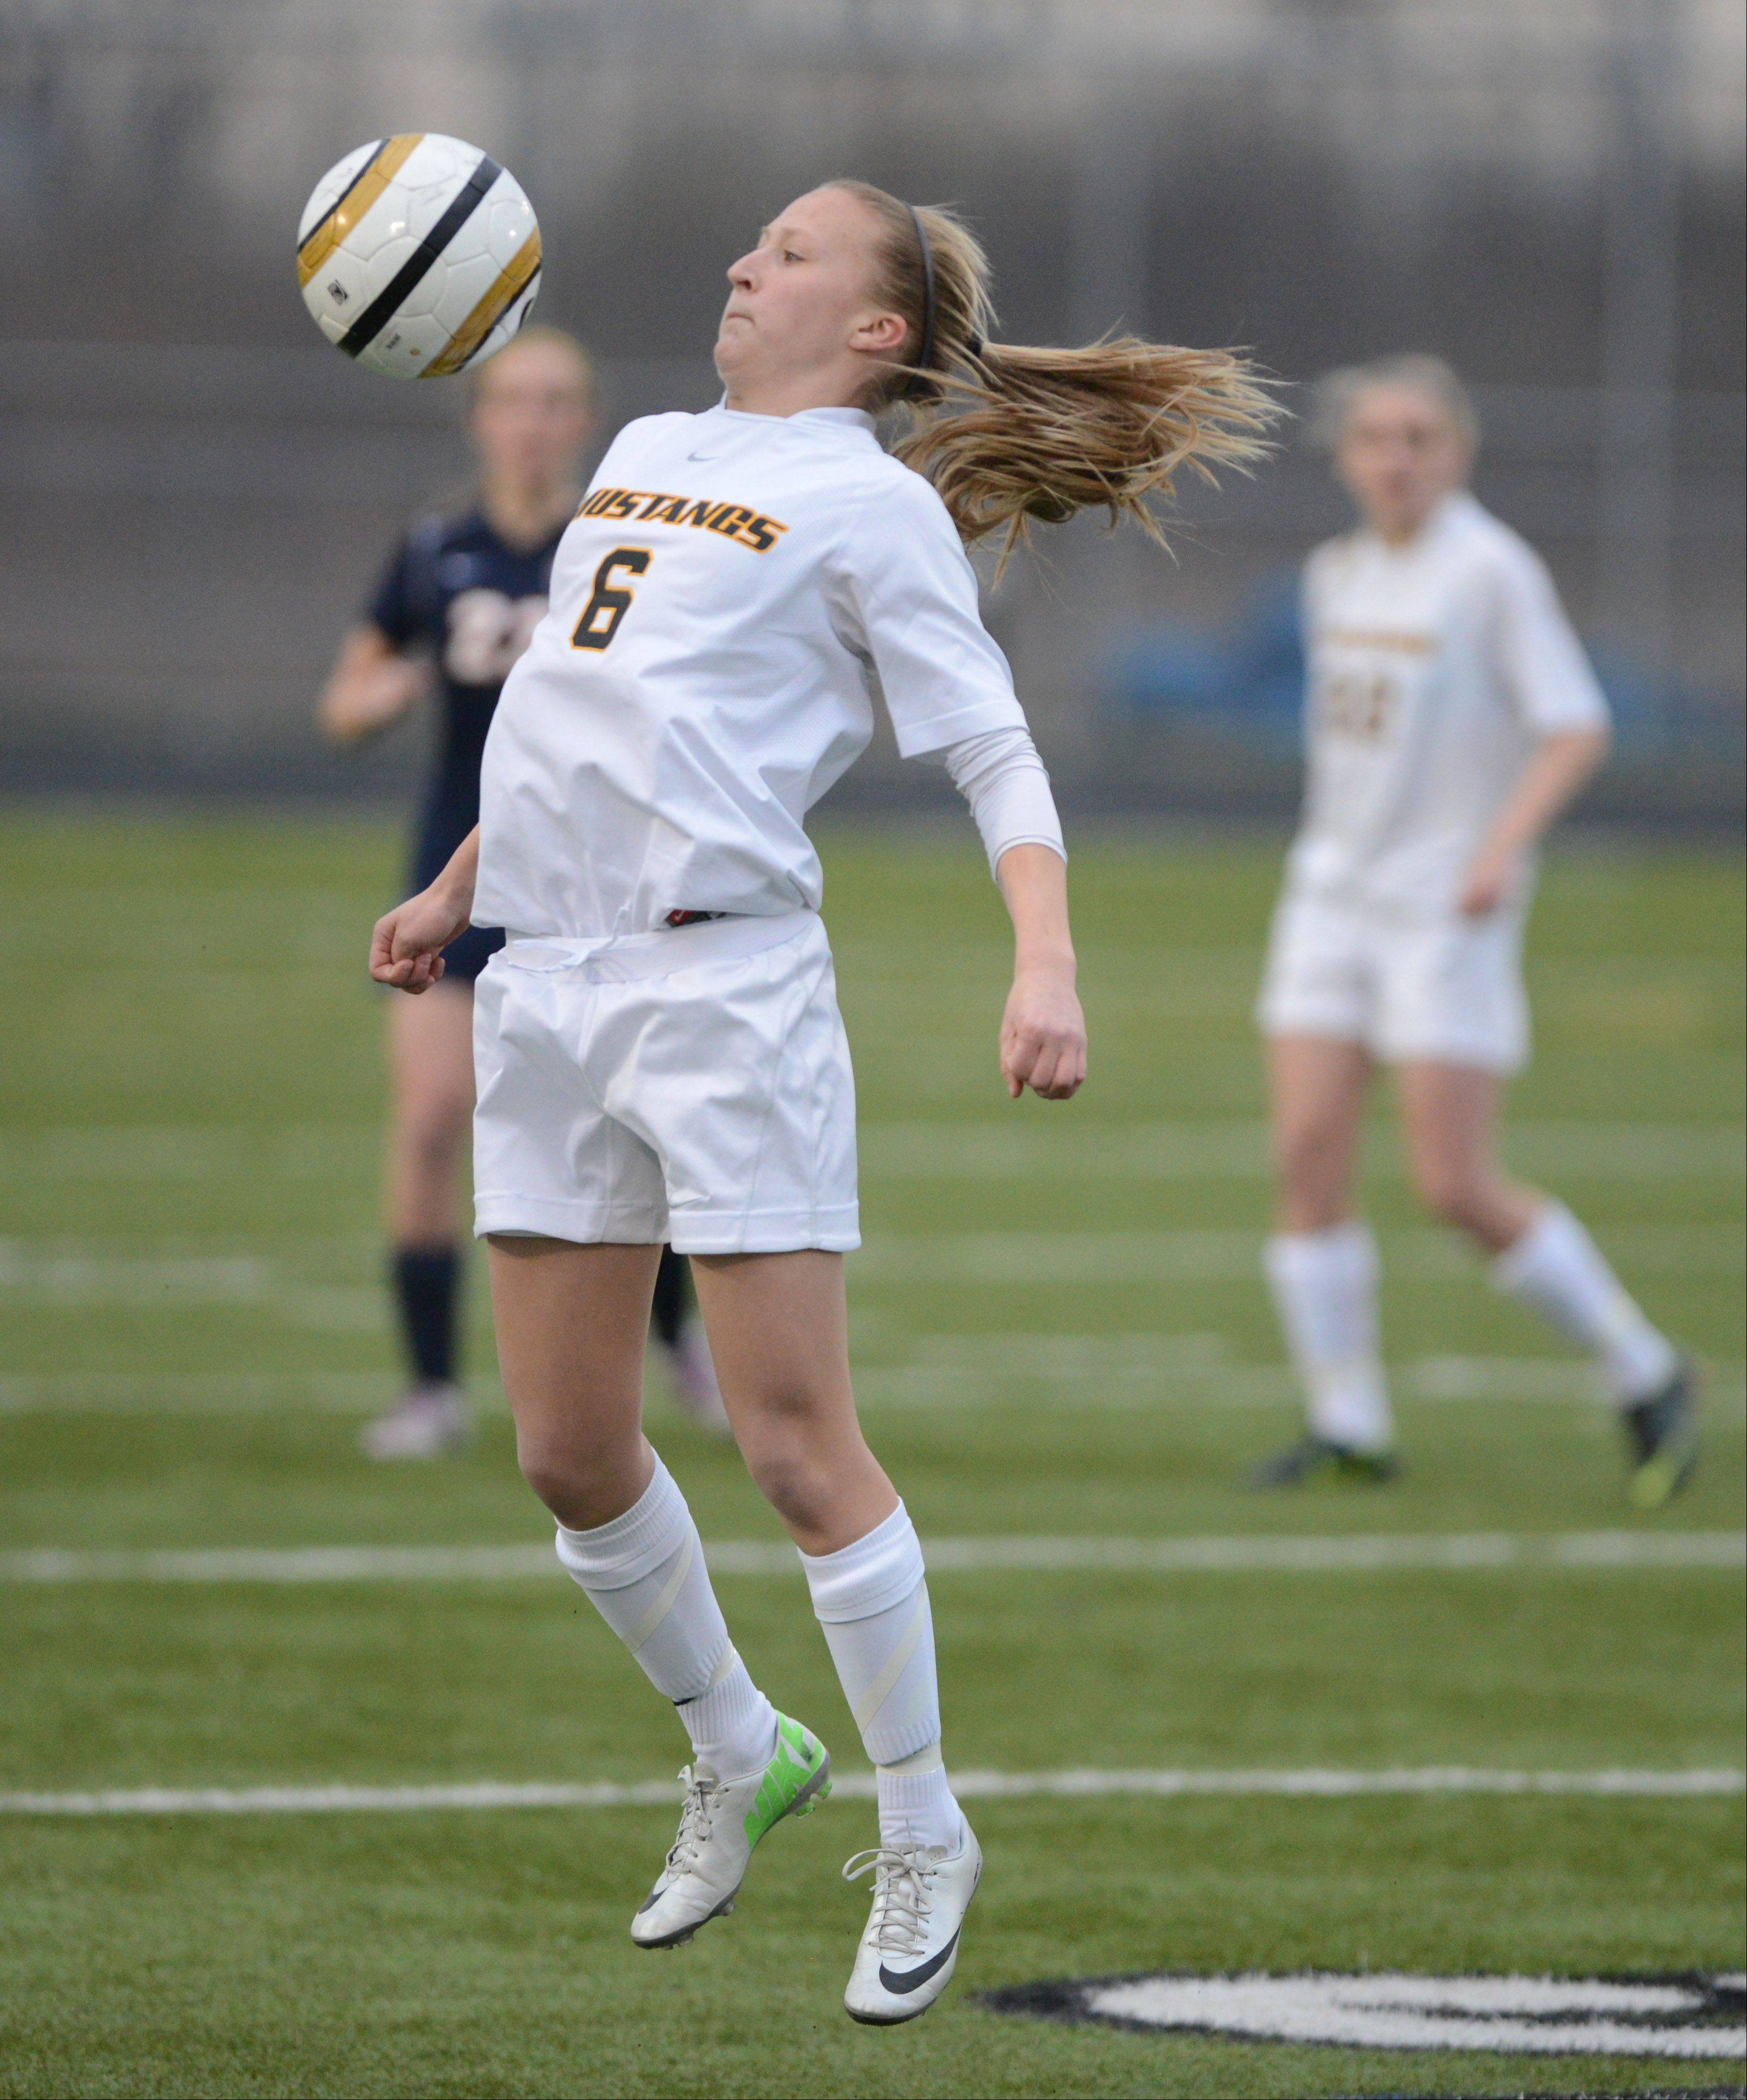 Alena Sidwell of Metea Valley works the ball during the Naperville North at Metea Valley girls soccer game Tuesday.